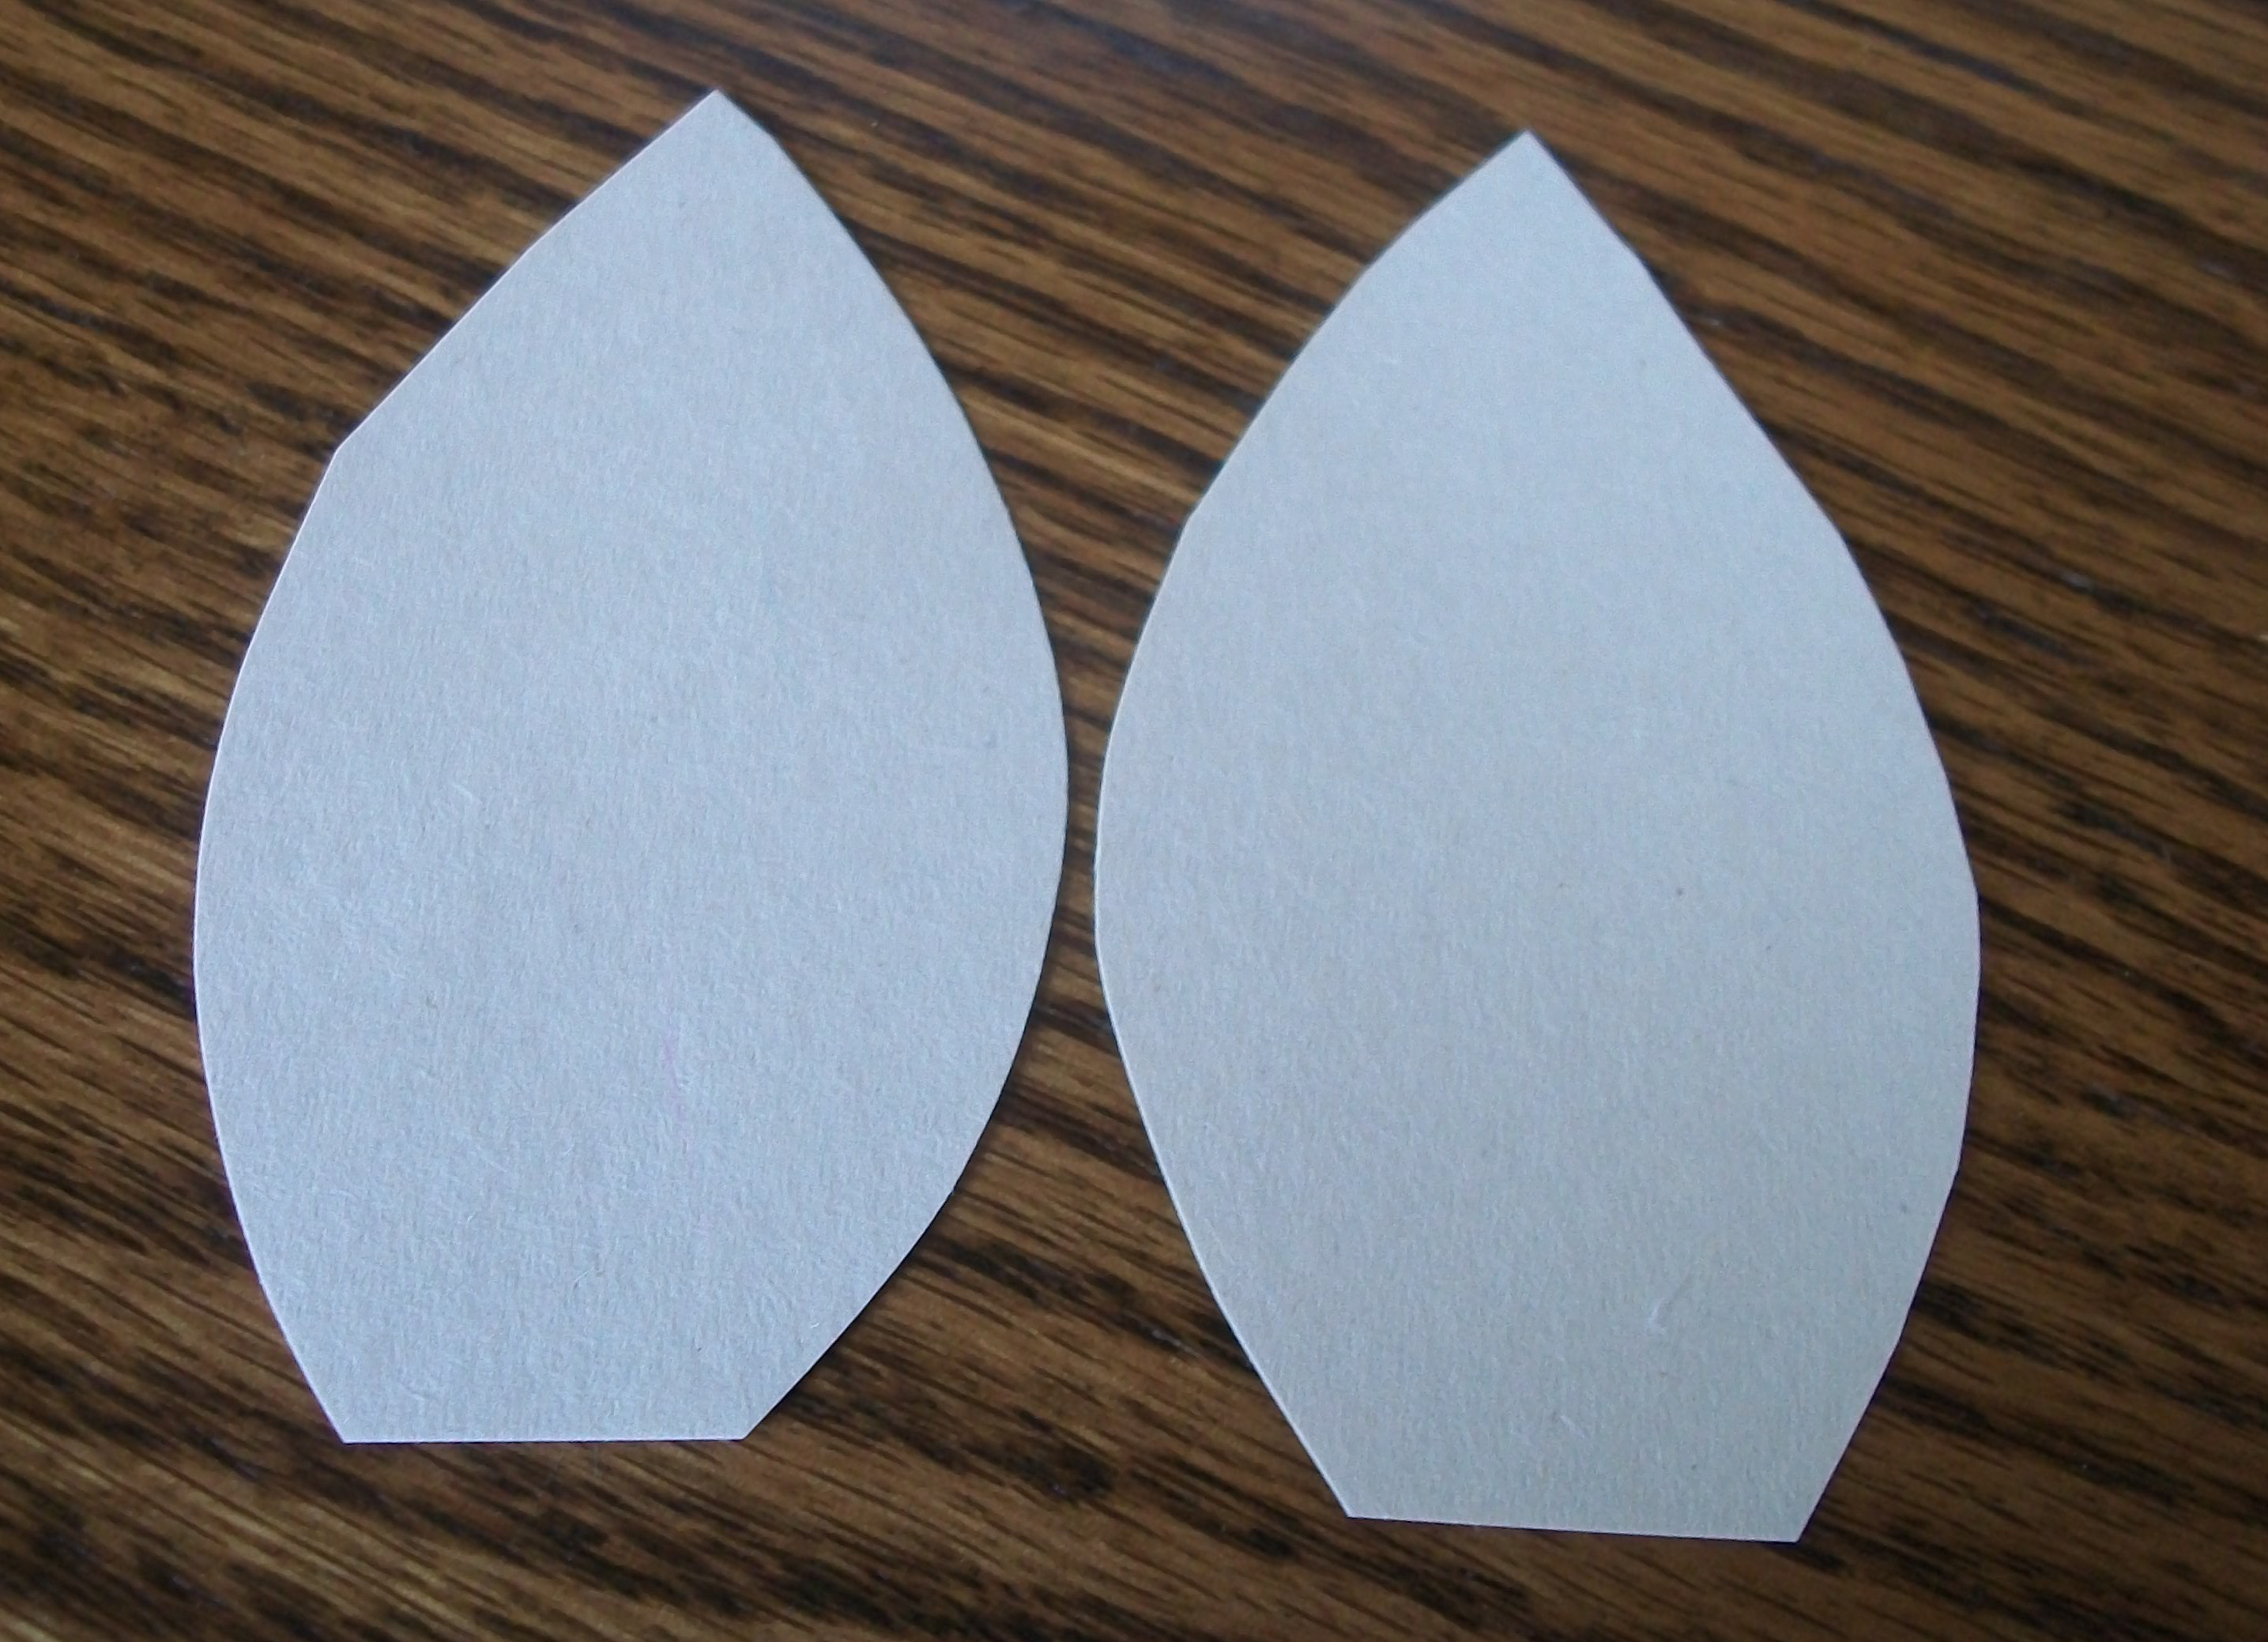 Cut Two Ears Out Of Your White Construction Paper They